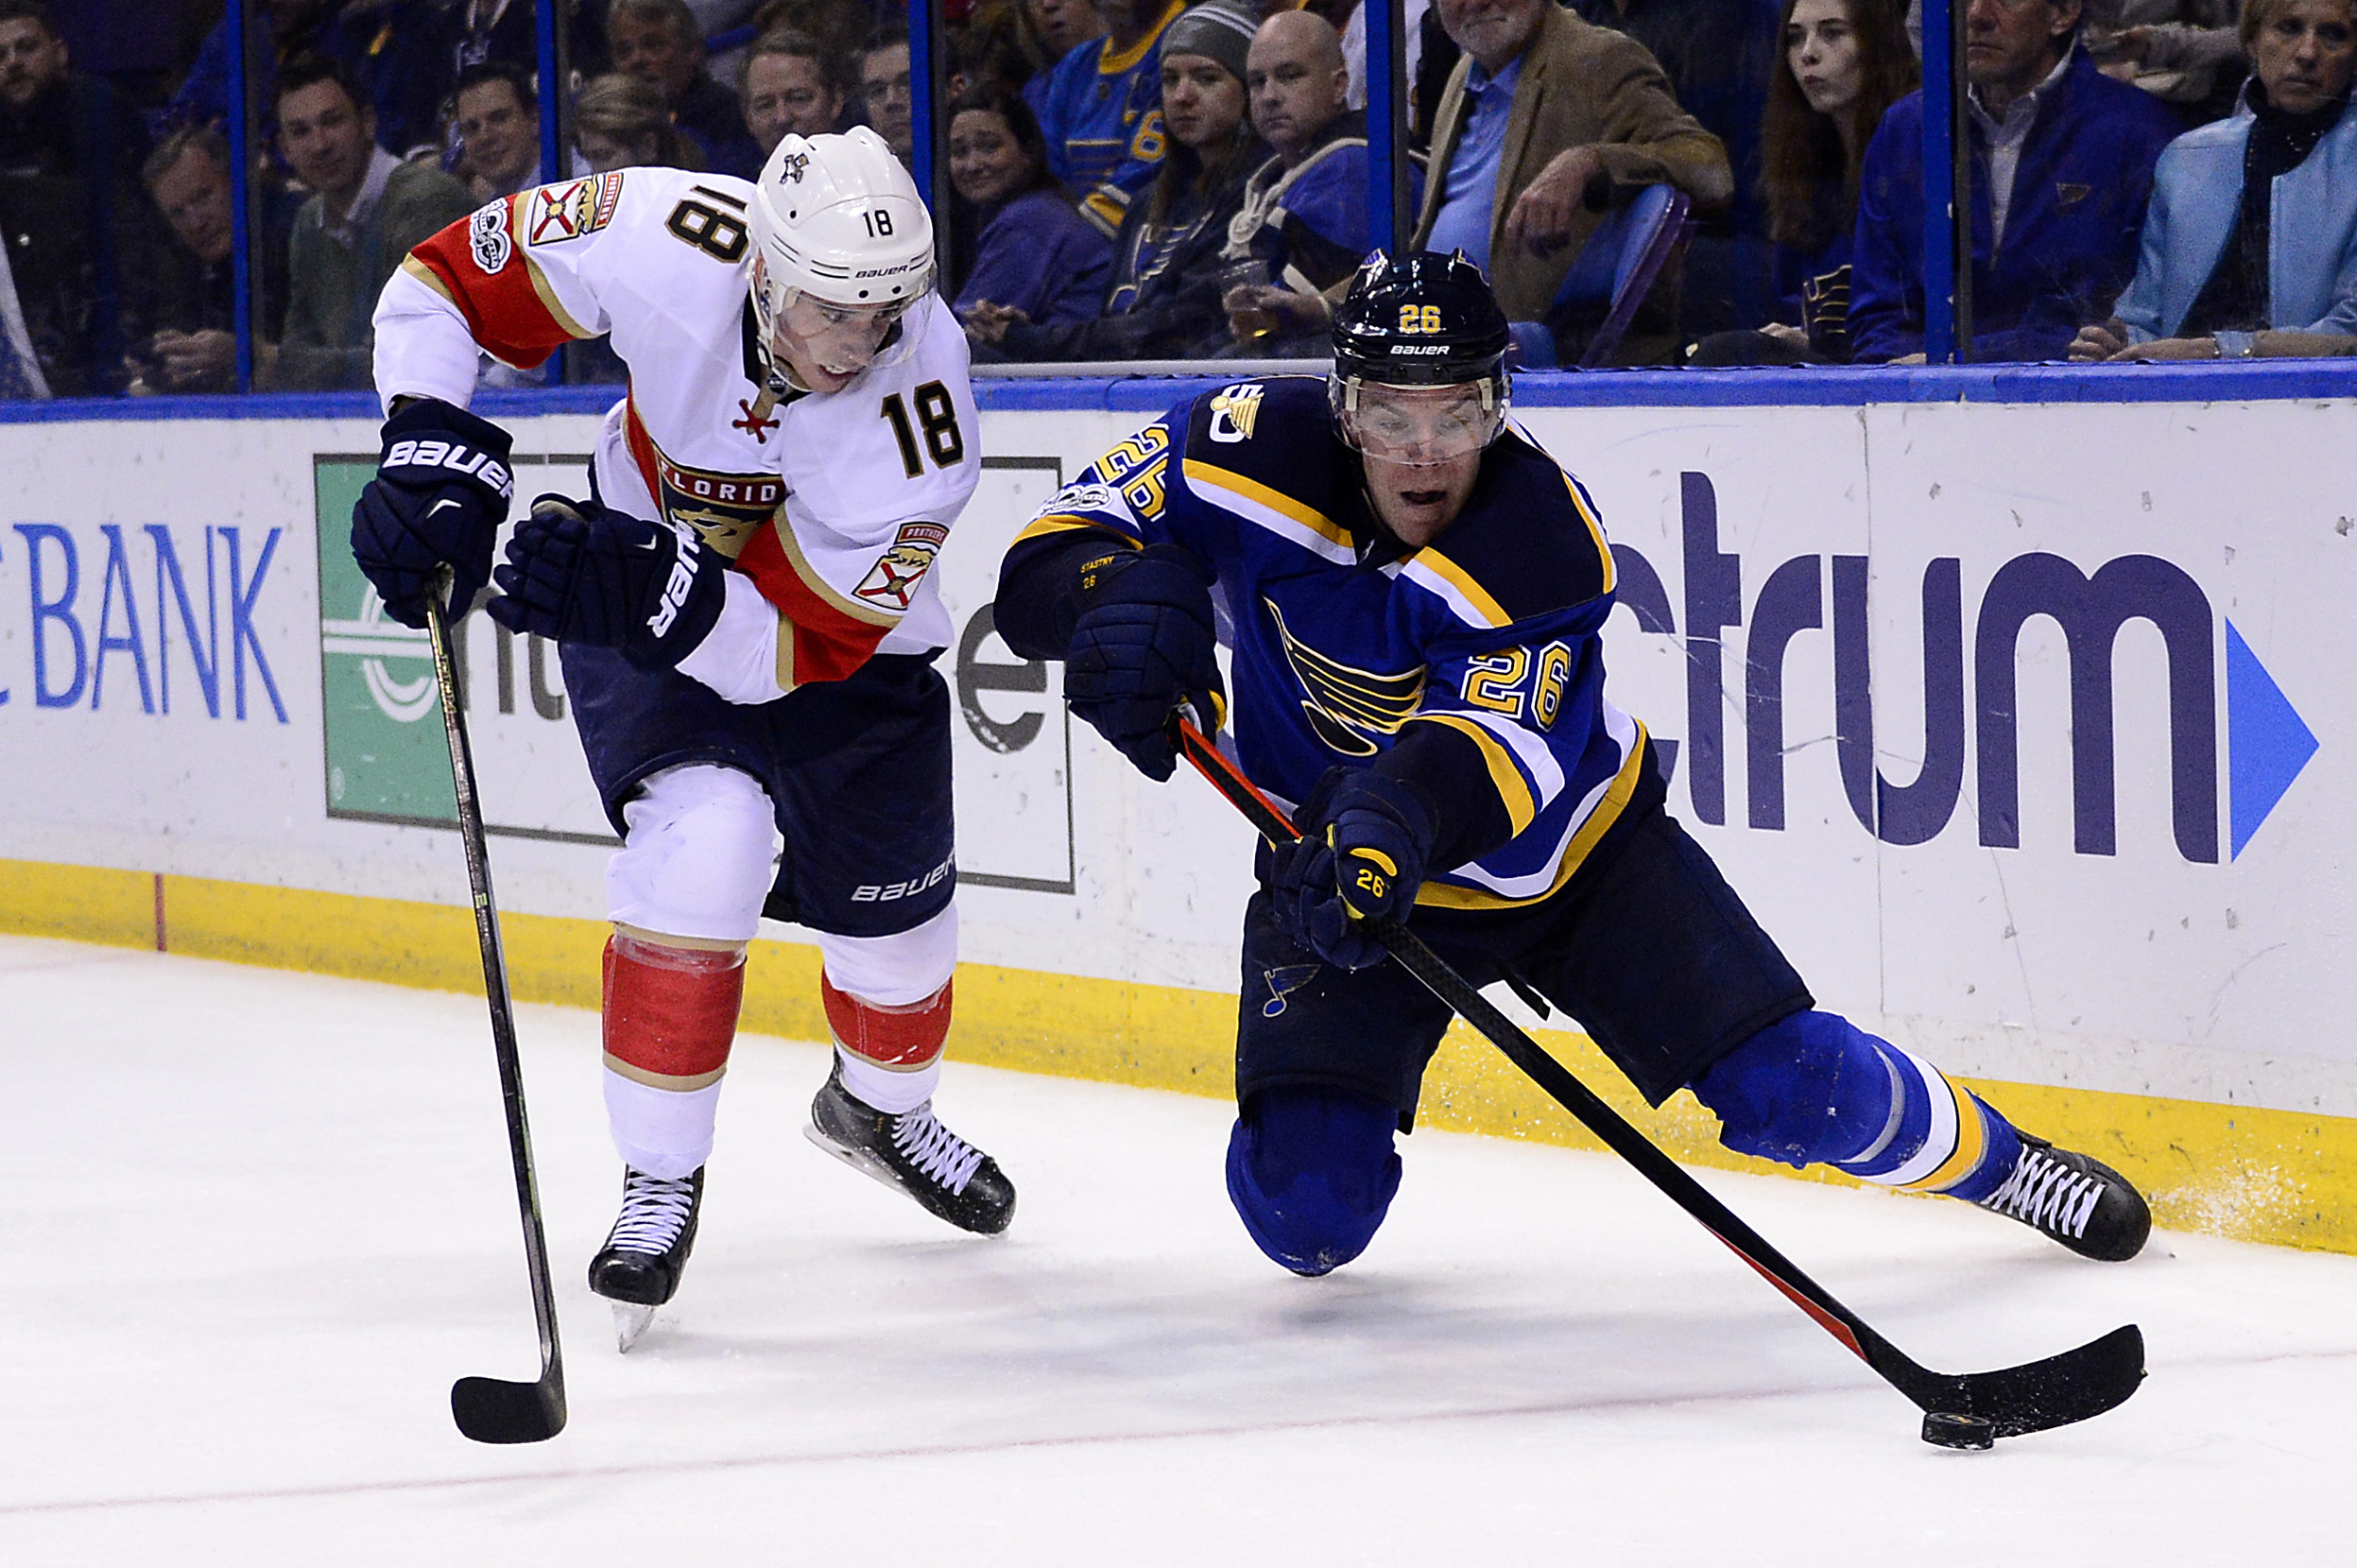 9890522-nhl-florida-panthers-at-st.-louis-blues